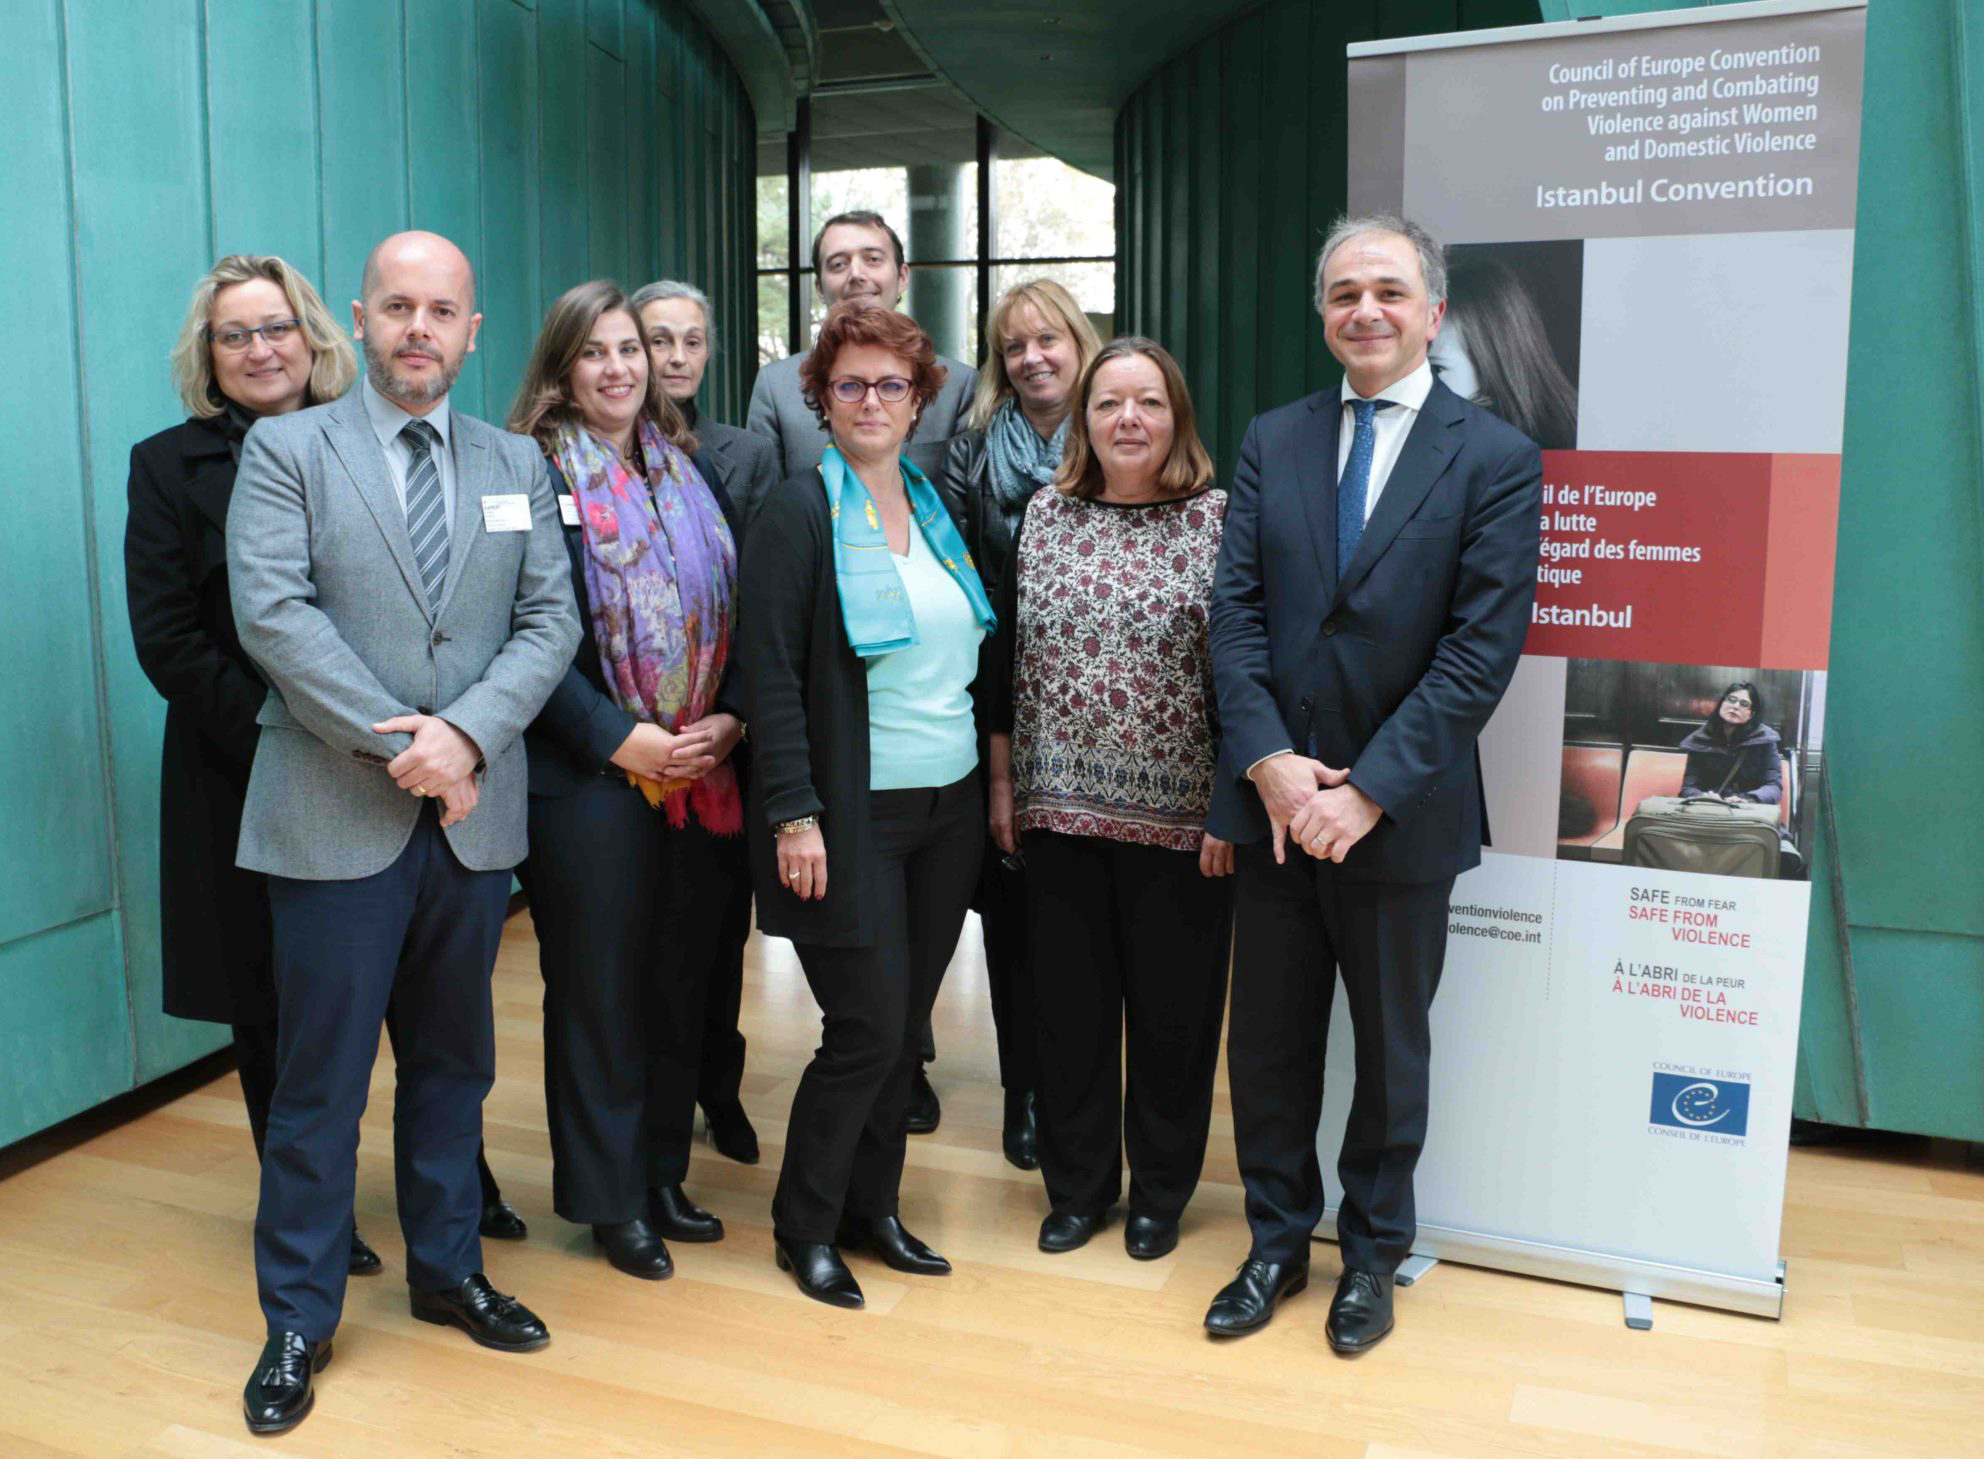 Monegasque delegation: Ms Anne Nègre, Inspector General of Administration, Ms Valérie Viora-Puyo, Director of Human Resources and Public Service Training, Ms Corinne Magail, Mission to the Directorate of International Affairs, Mrs Sylvie Louche, Head of the Childhood and Family Division at Department of Social Welfare and Social Services, Mrs Isabelle Castelli, Commander Police Deparment,  Mrs Antonella Sampo, Principal Administrator in the Directorate of Judicial Services, Mr Frédéric Pardo, Senior Legal Officer, International Law, Human Rights and Freedoms Service Of the Directorate of Legal Affairs and Mr Gabriel Revel, Deputy to the Permanent Representative to the Principality of Monaco to the Council of Europe. ©DR